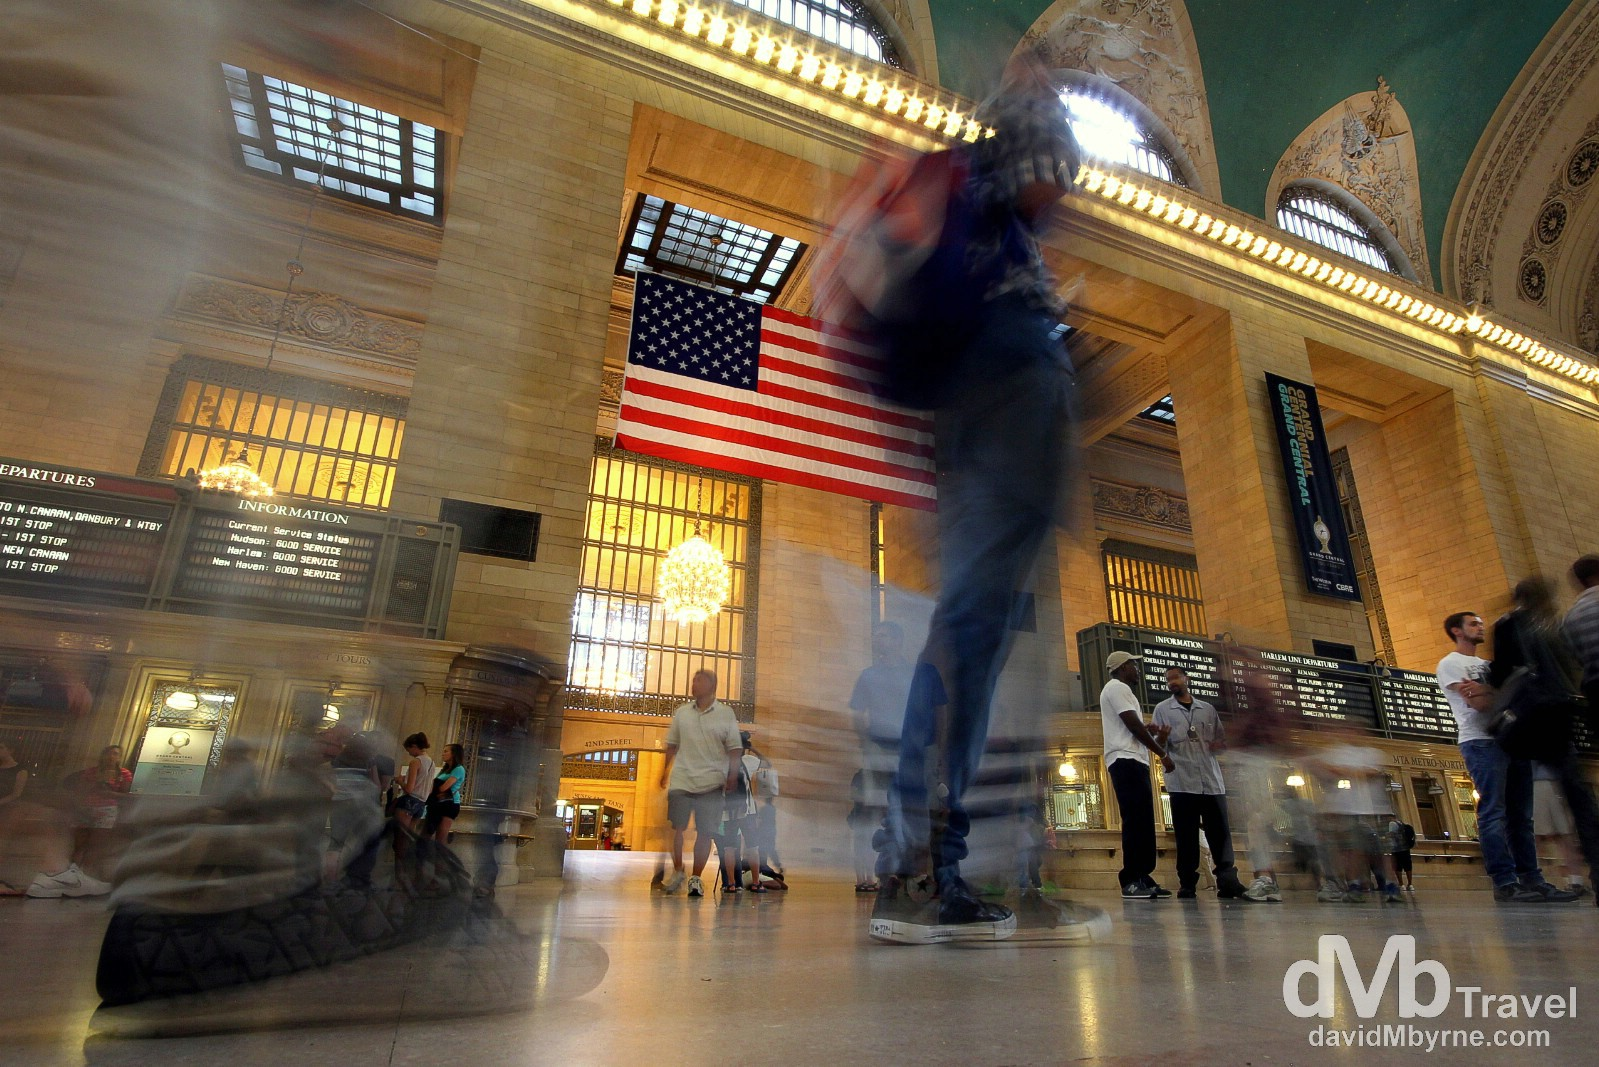 Grand Central Station/Terminal, New York City, USA. July 13th 2013.